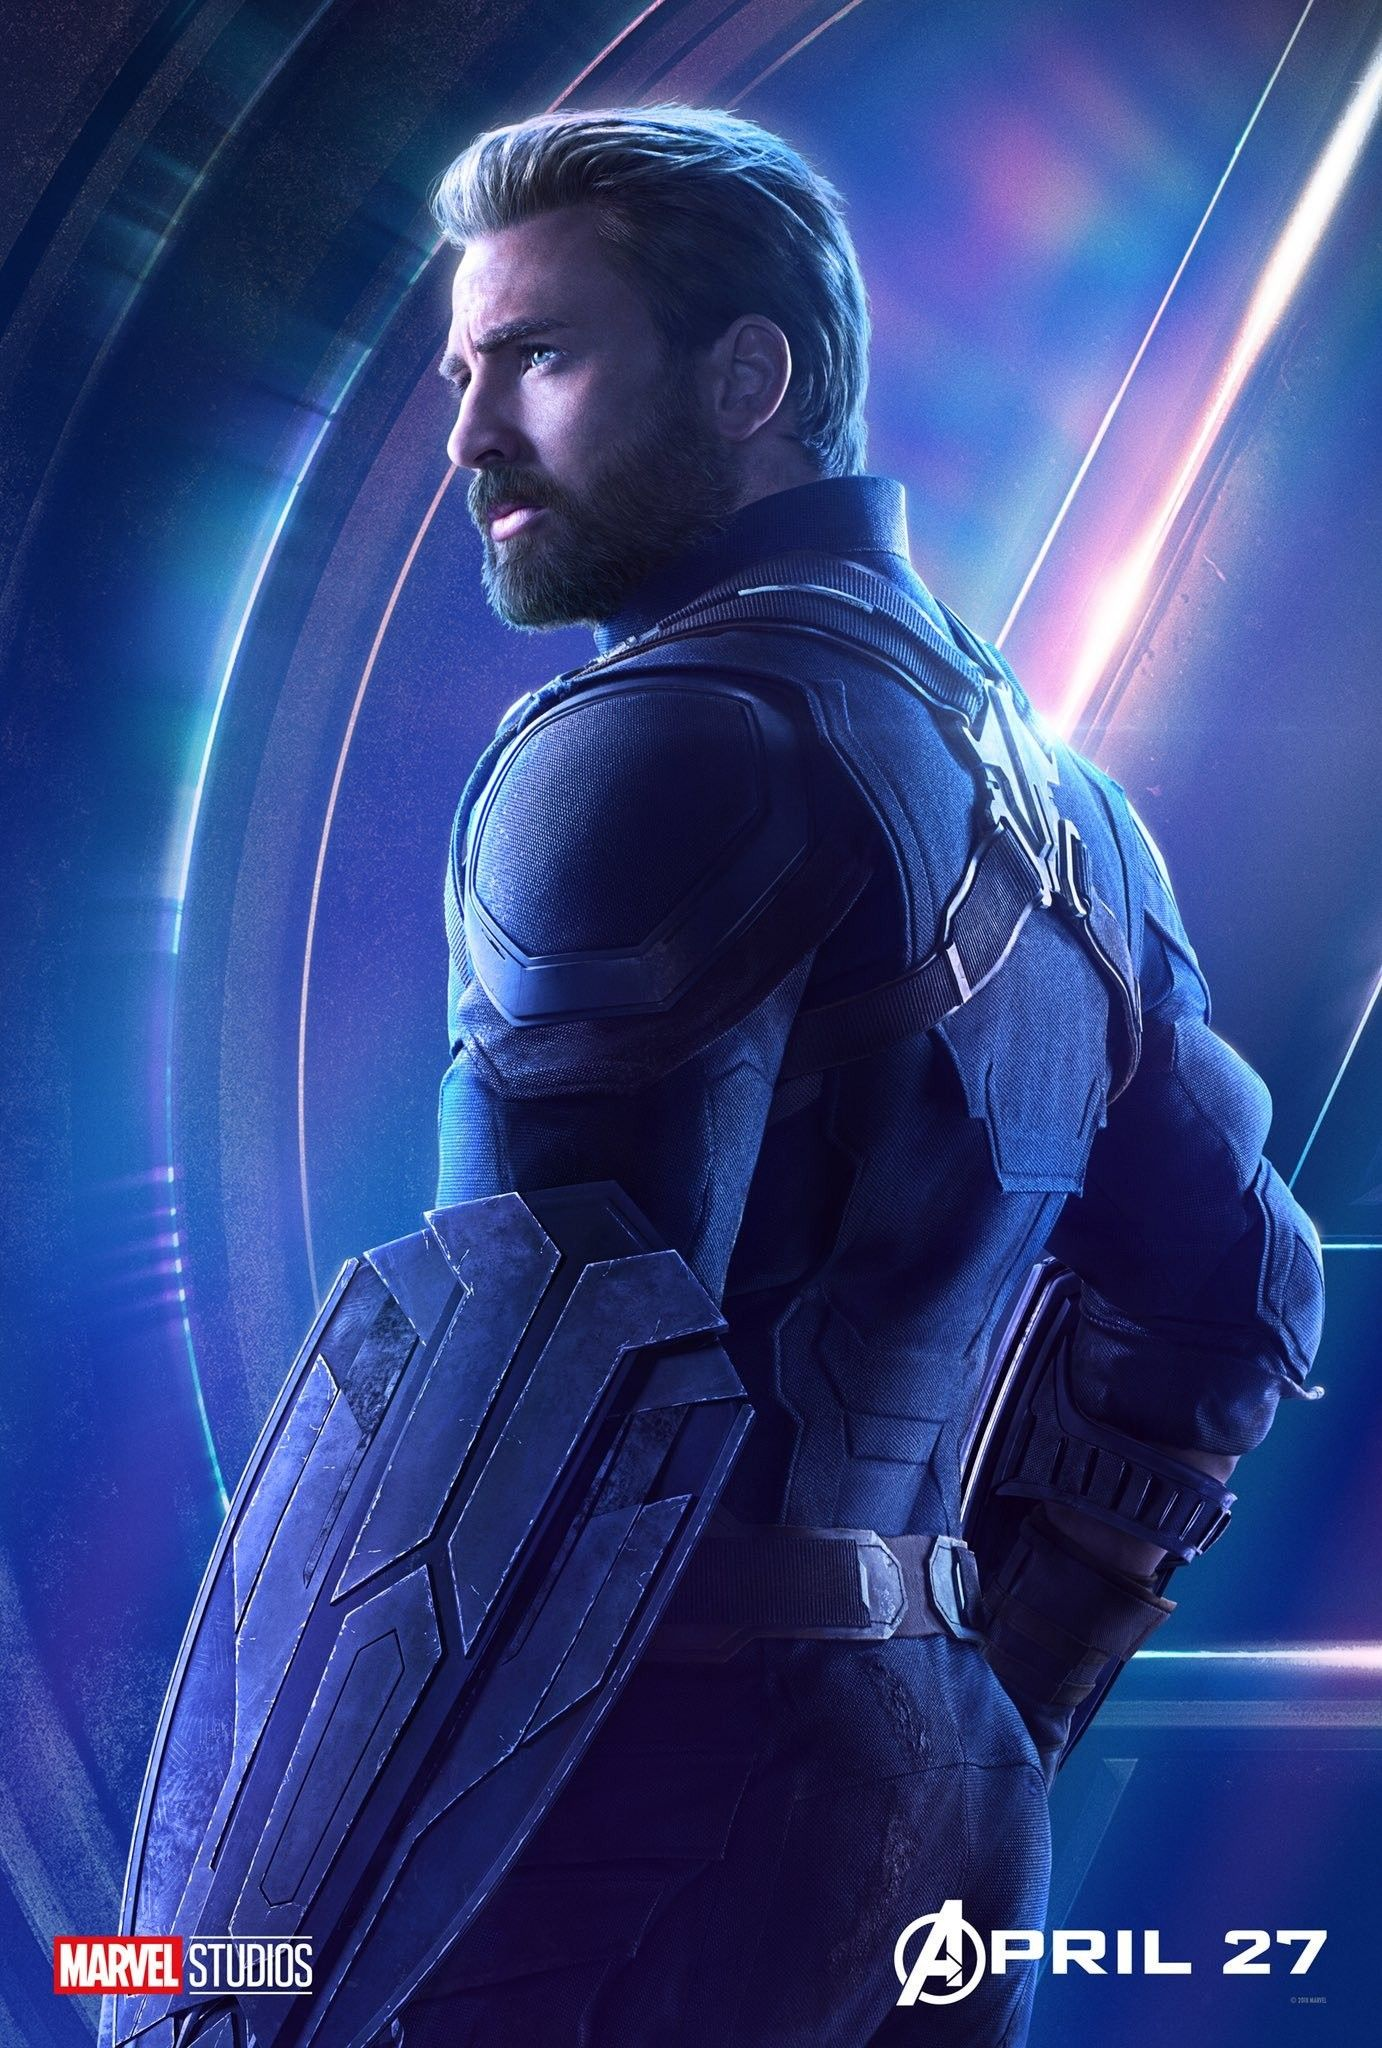 Pin By Teamx 1d On Chris Evans Captain America Poster Marvel